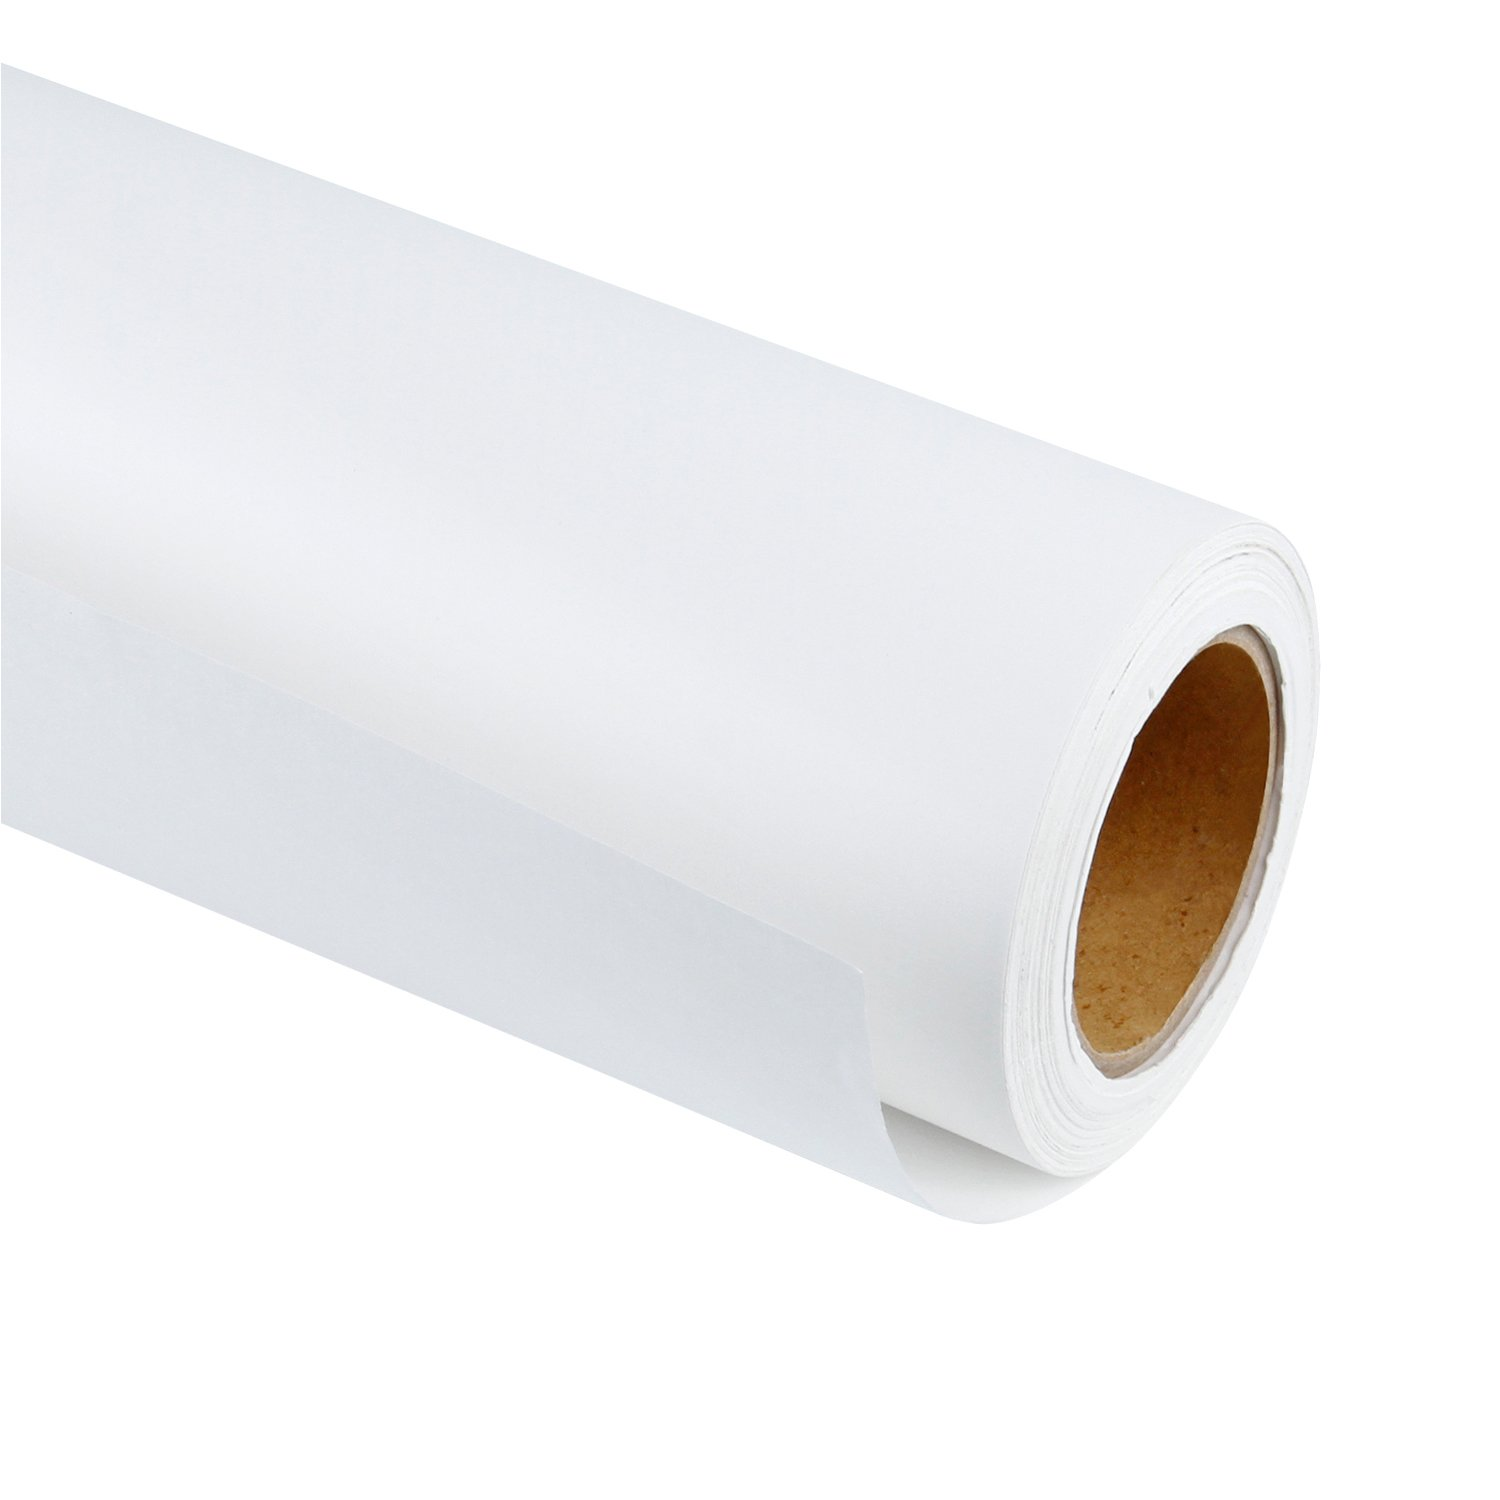 RUSPEPA White Kraft Paper Roll - 30 inch x 100 Feet - Recycled Paper Perfect for for Crafts, Art, Gift Wrapping, Packing, Postal, Shipping, Dunnage & Parcel